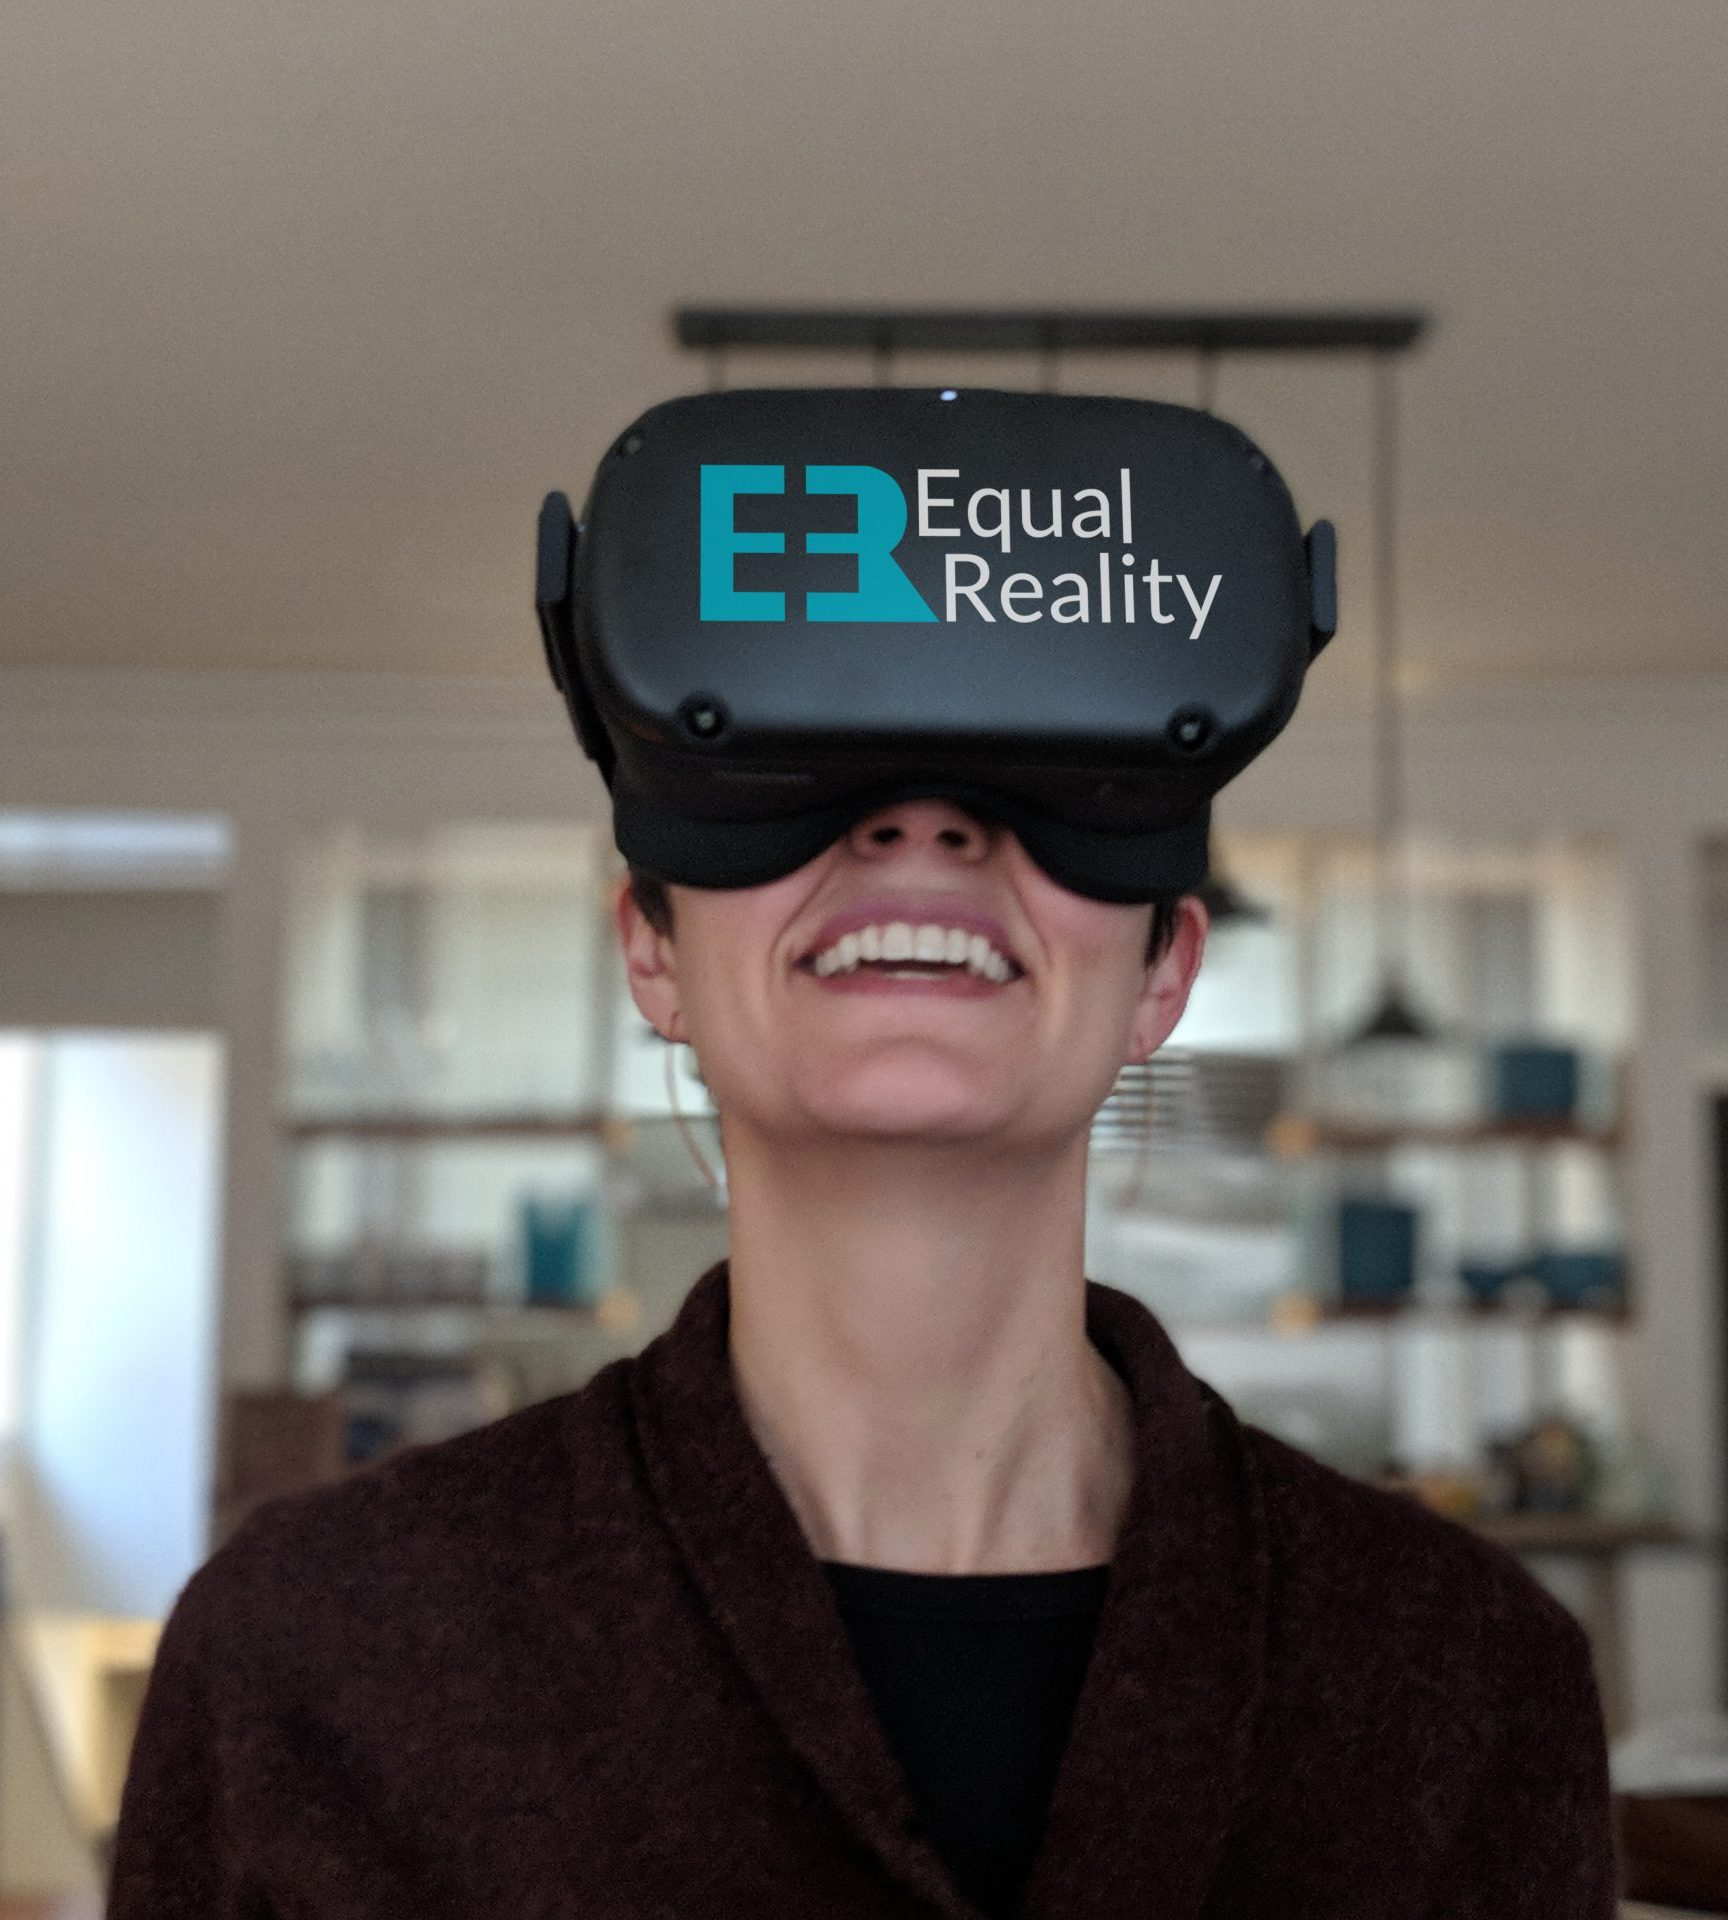 virtual reality diversity inclusion training user at workplace